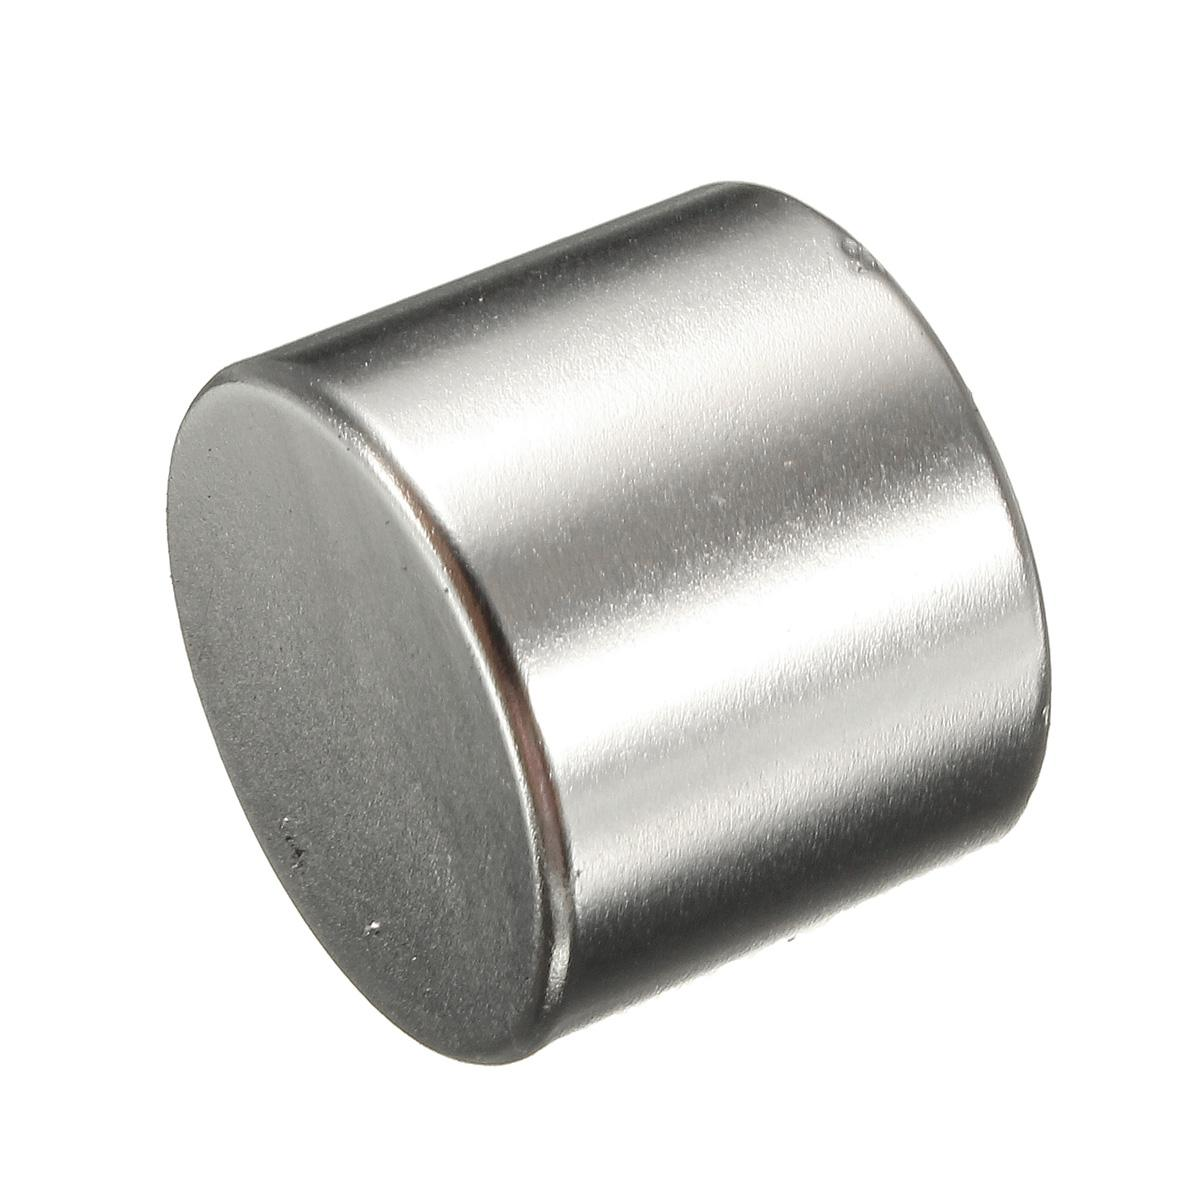 The Old Tree N50 Strong Small Disc Round Cylinder Magnet 25 mm x 20 mm Rare